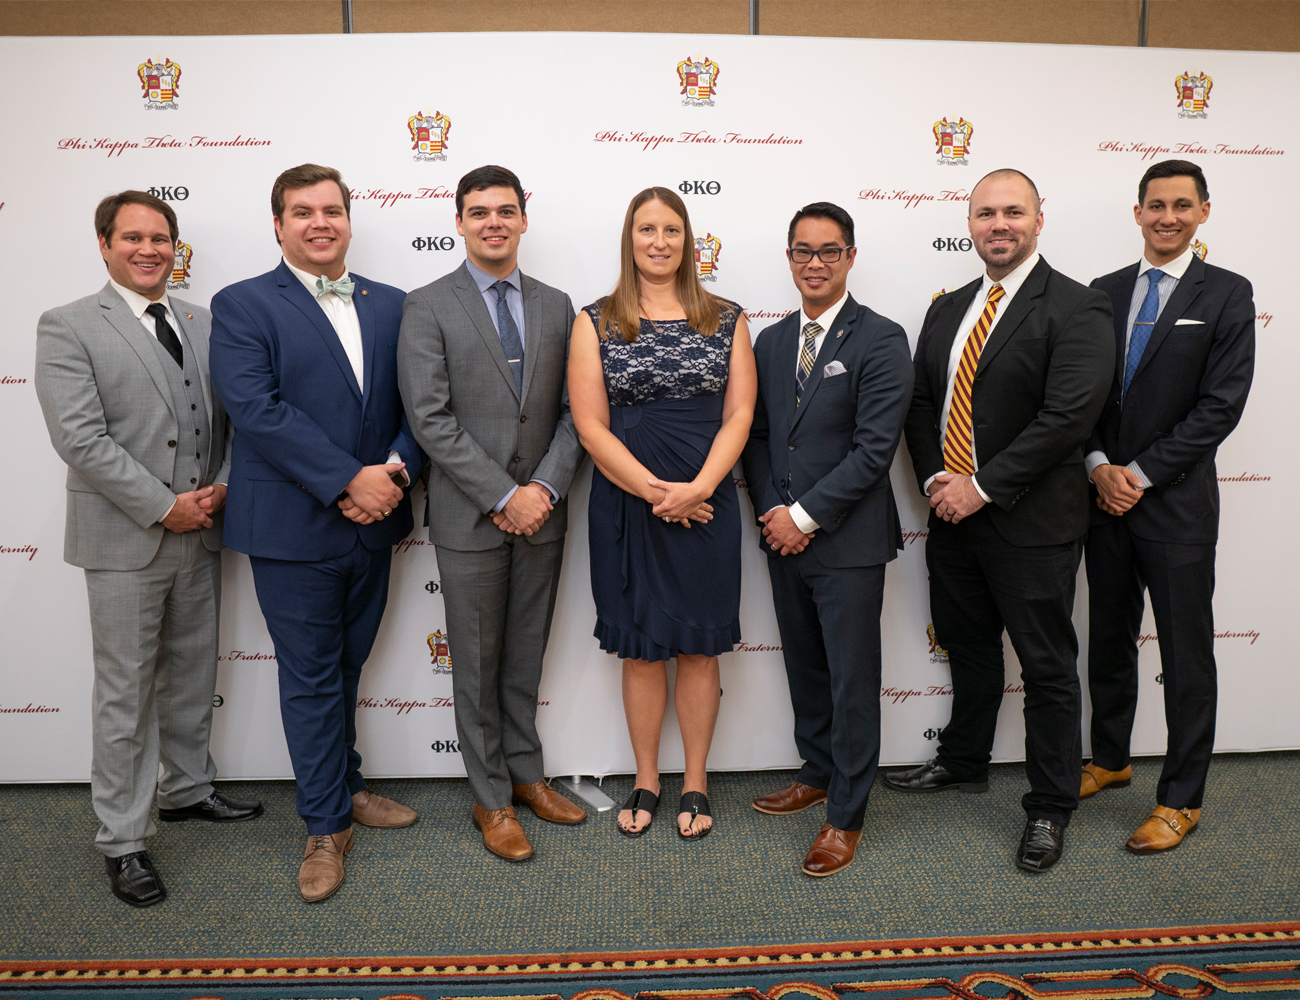 2018 Phi Kappa Theta Executive Office Staff.